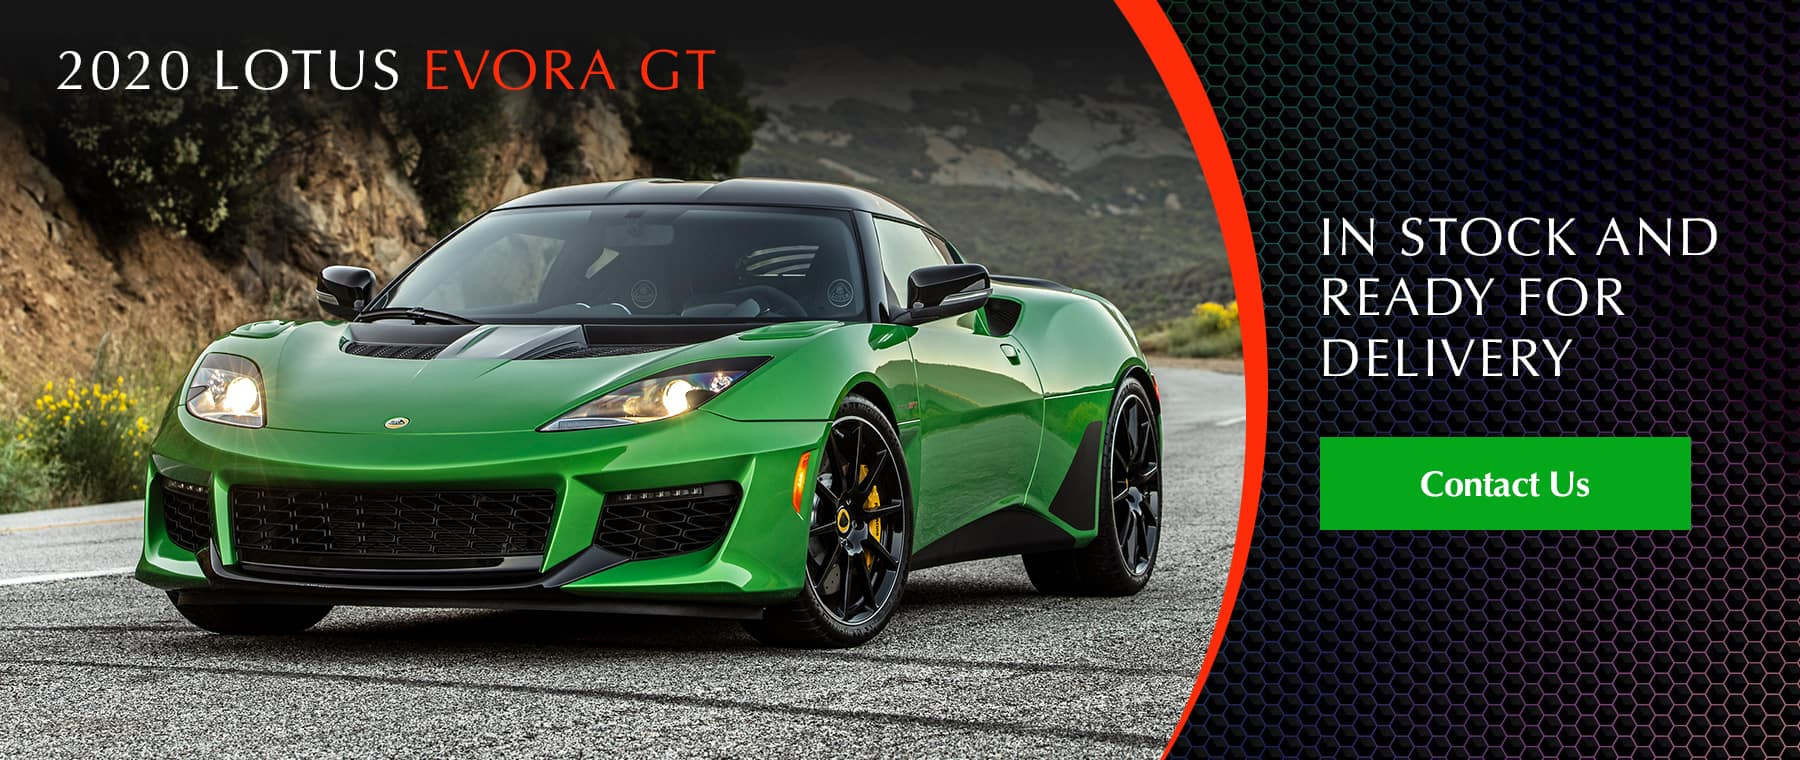 2020 Lotus Evora GT In Stock & Ready For Delivery